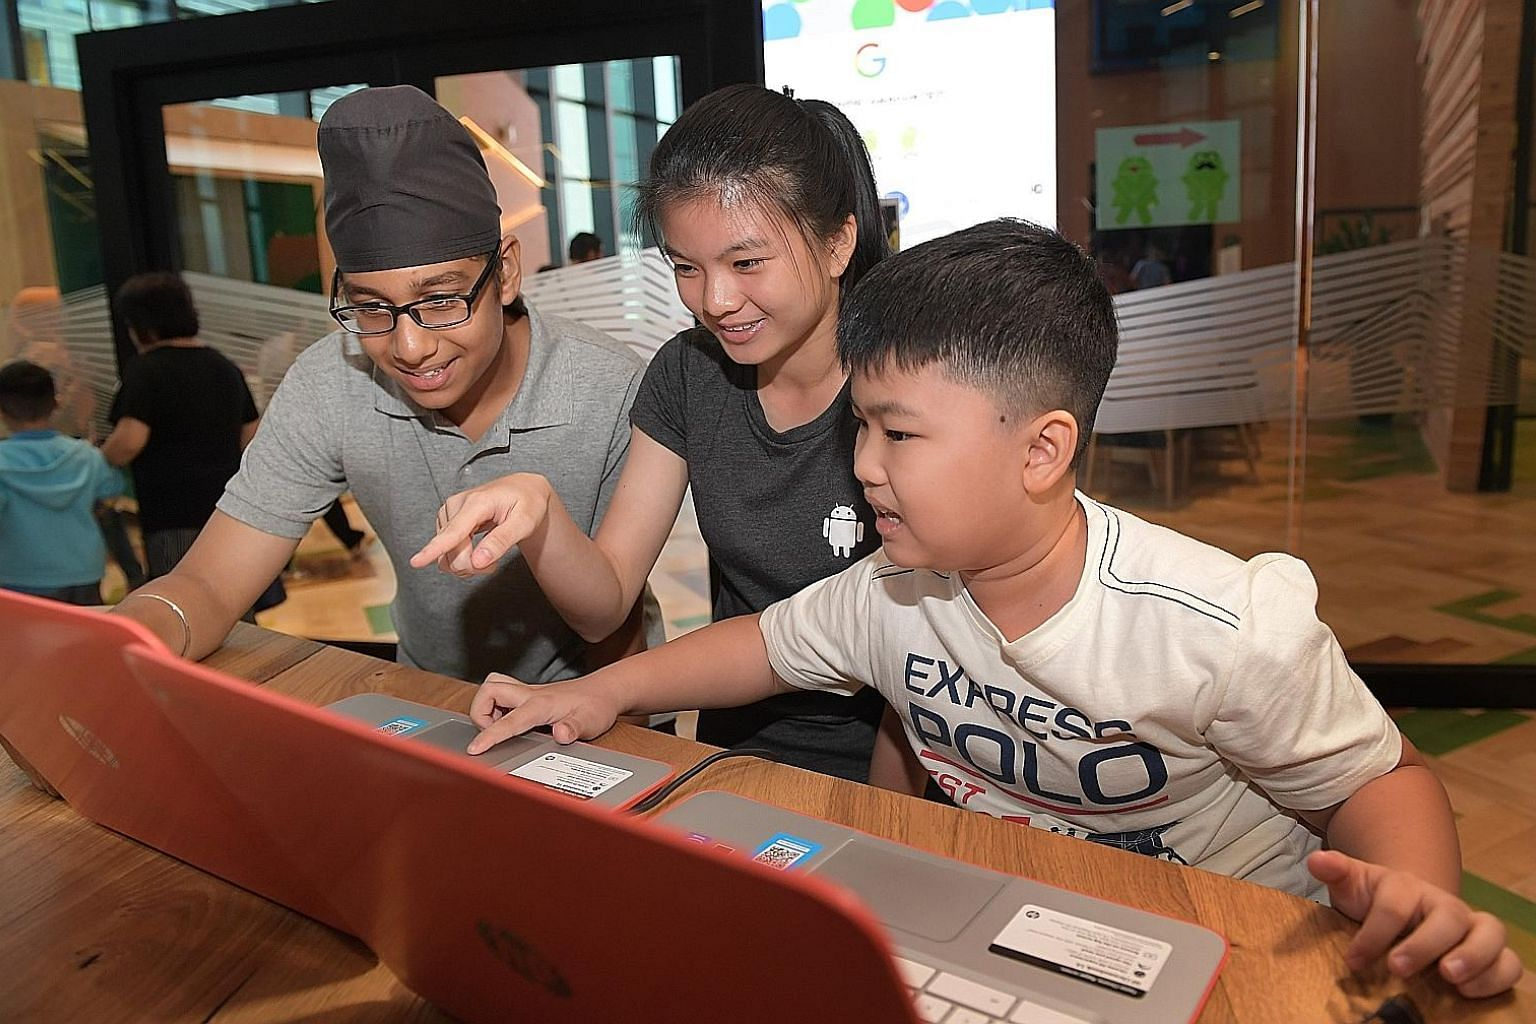 Keeret Singh Sandhu, 13, Celeste Low, 15, and Matthew Chua, 10, demonstrating their coding ability at the Google office in Pasir Panjang yesterday after completing a 10-week module.